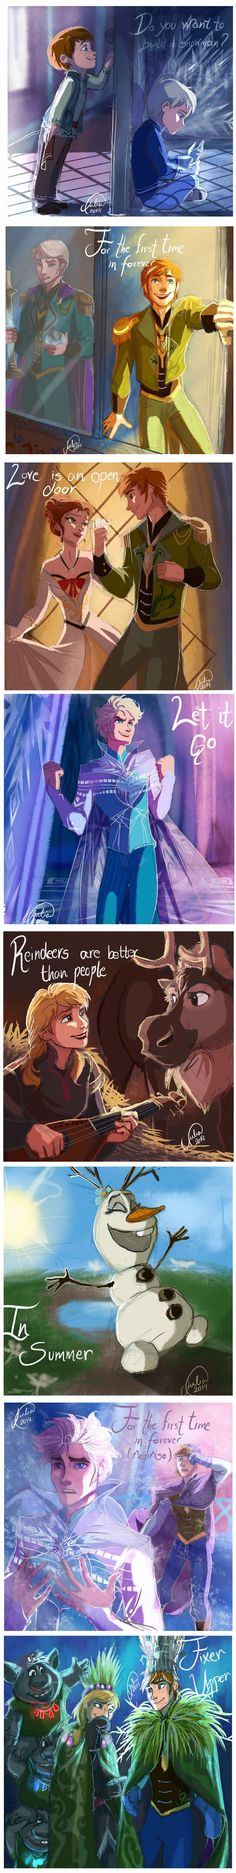 I have no idea why I love gender bent frozen so much, it's just beautifully…